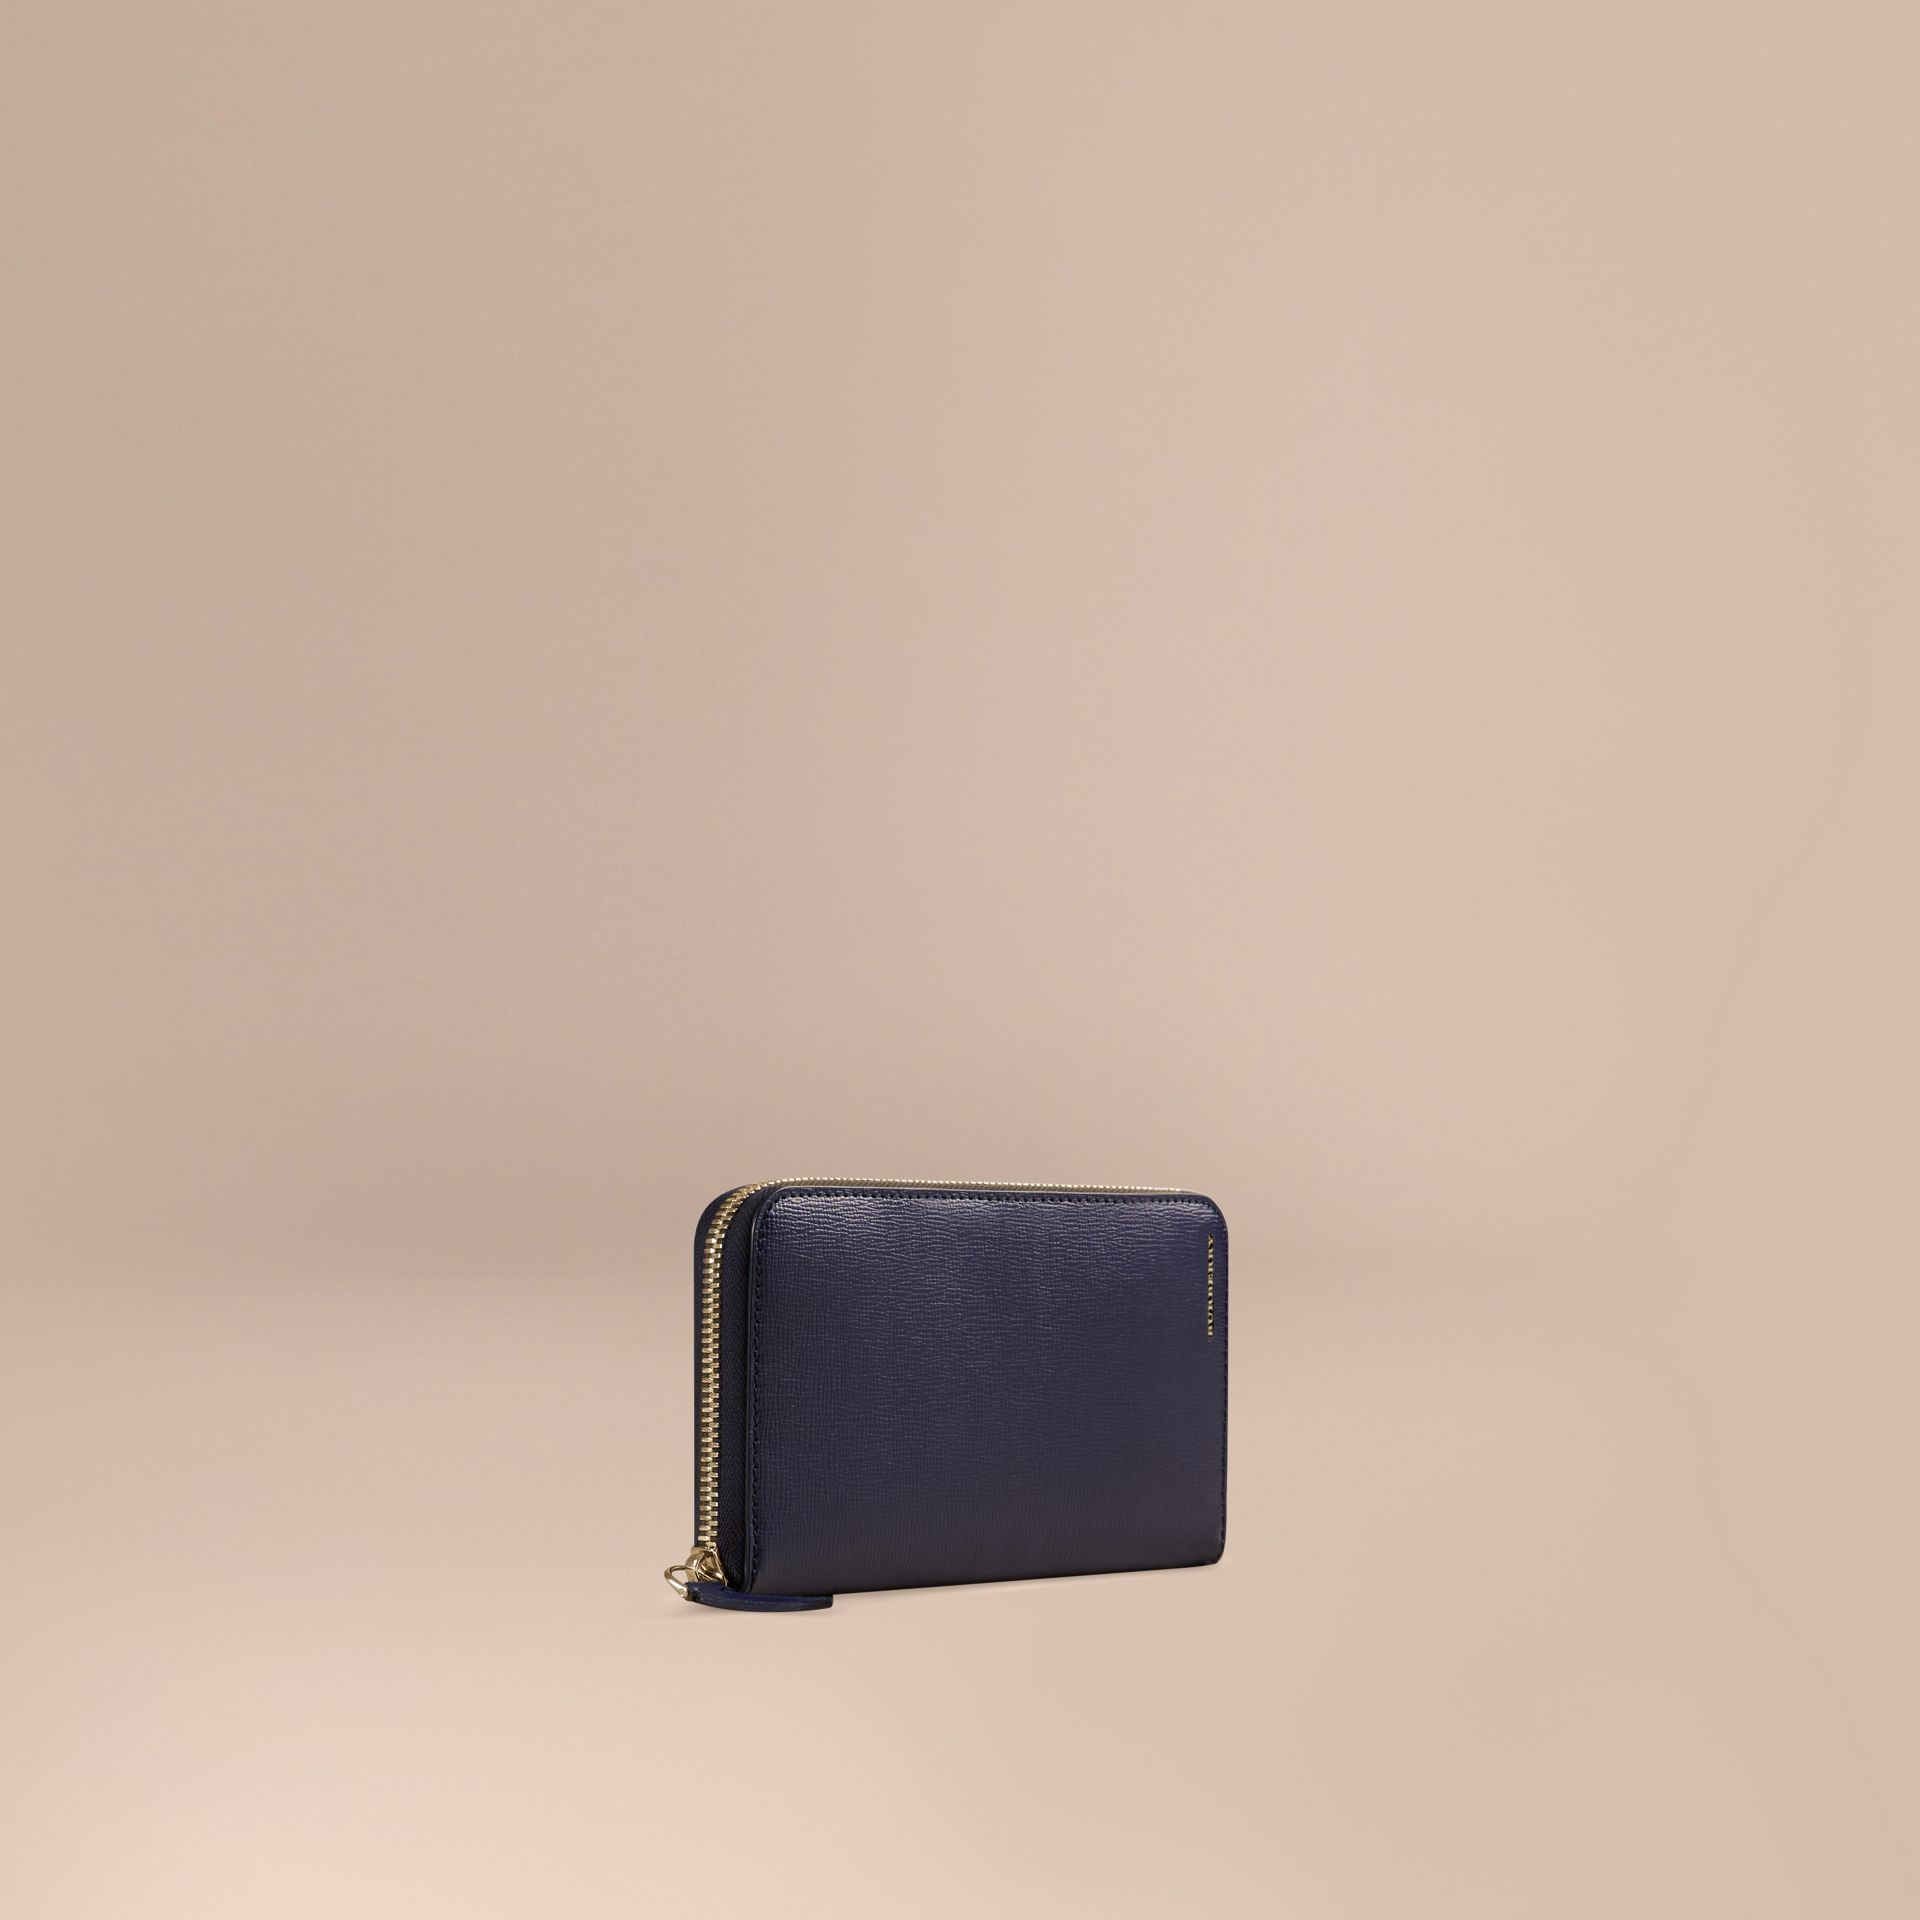 London Leather Ziparound Wallet in Dark Navy | Burberry - gallery image 1